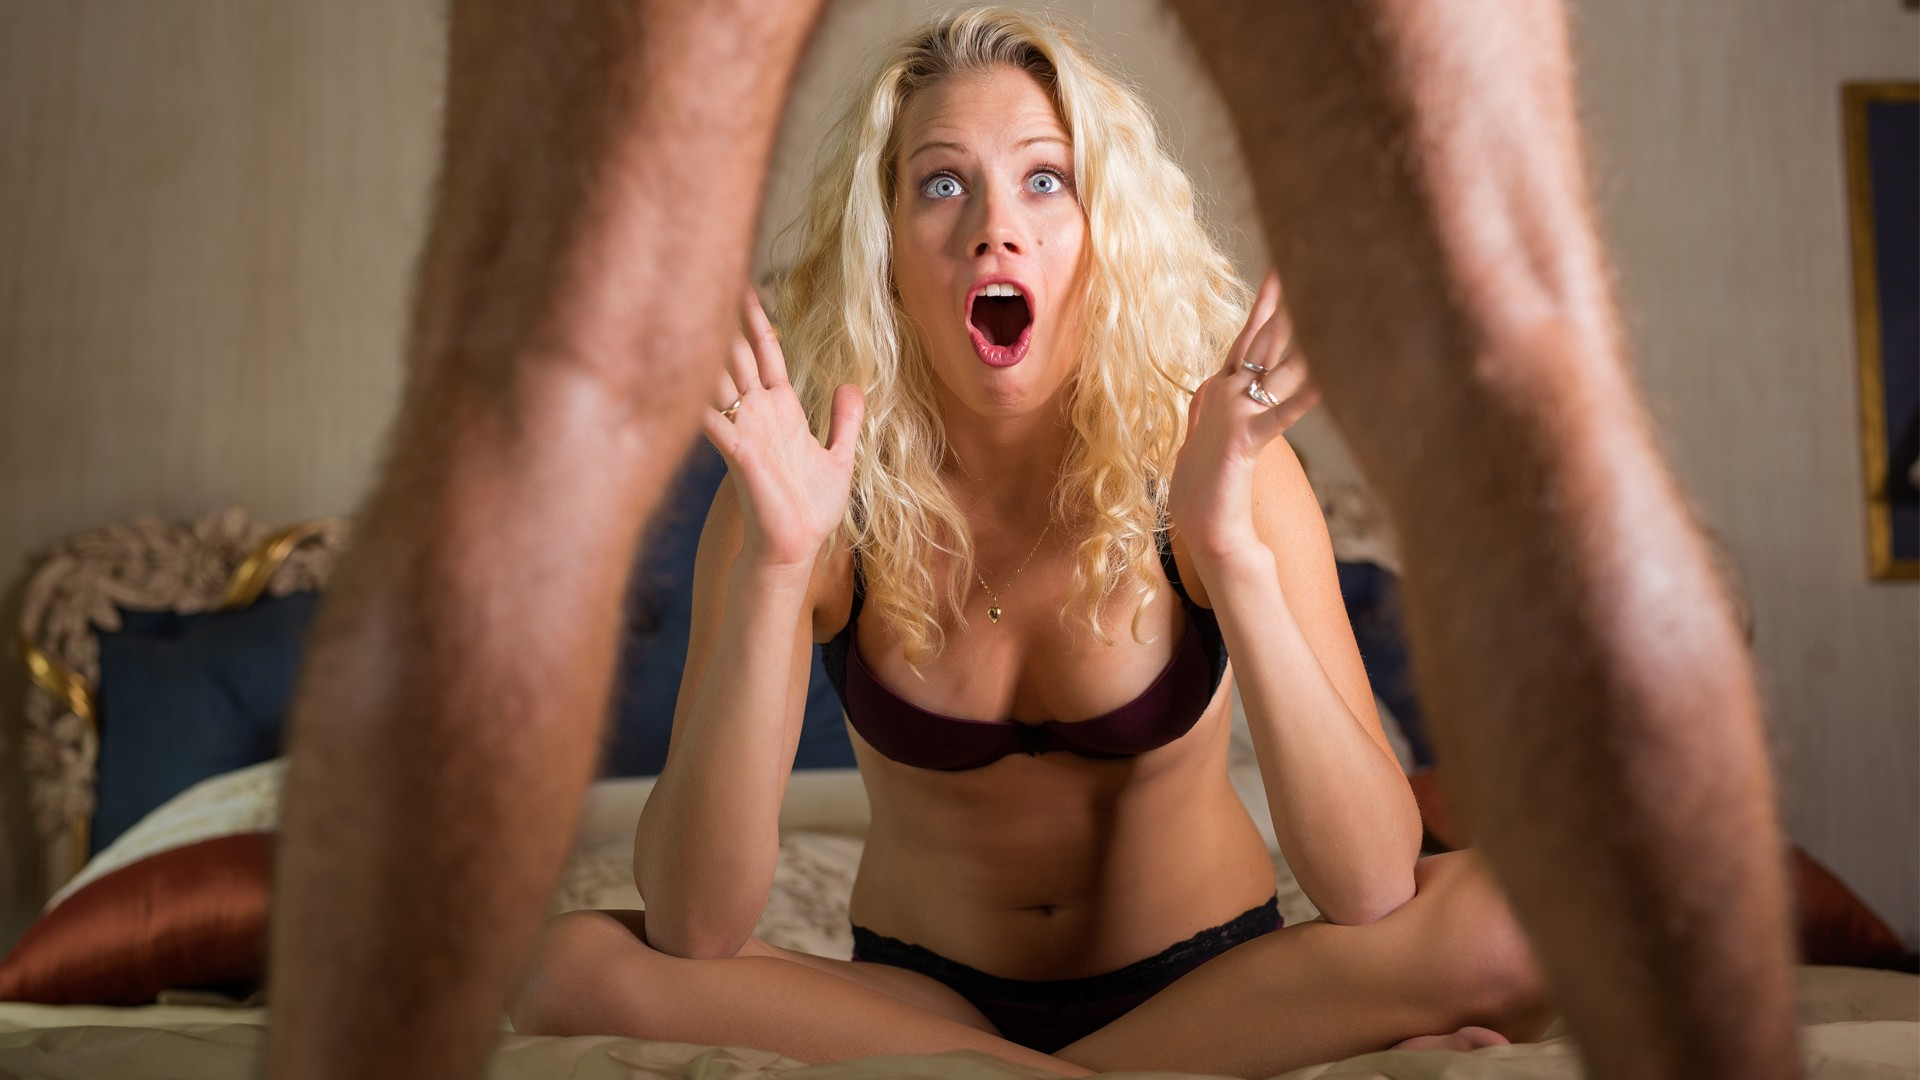 Blonde Ex Girlfriend Creampie